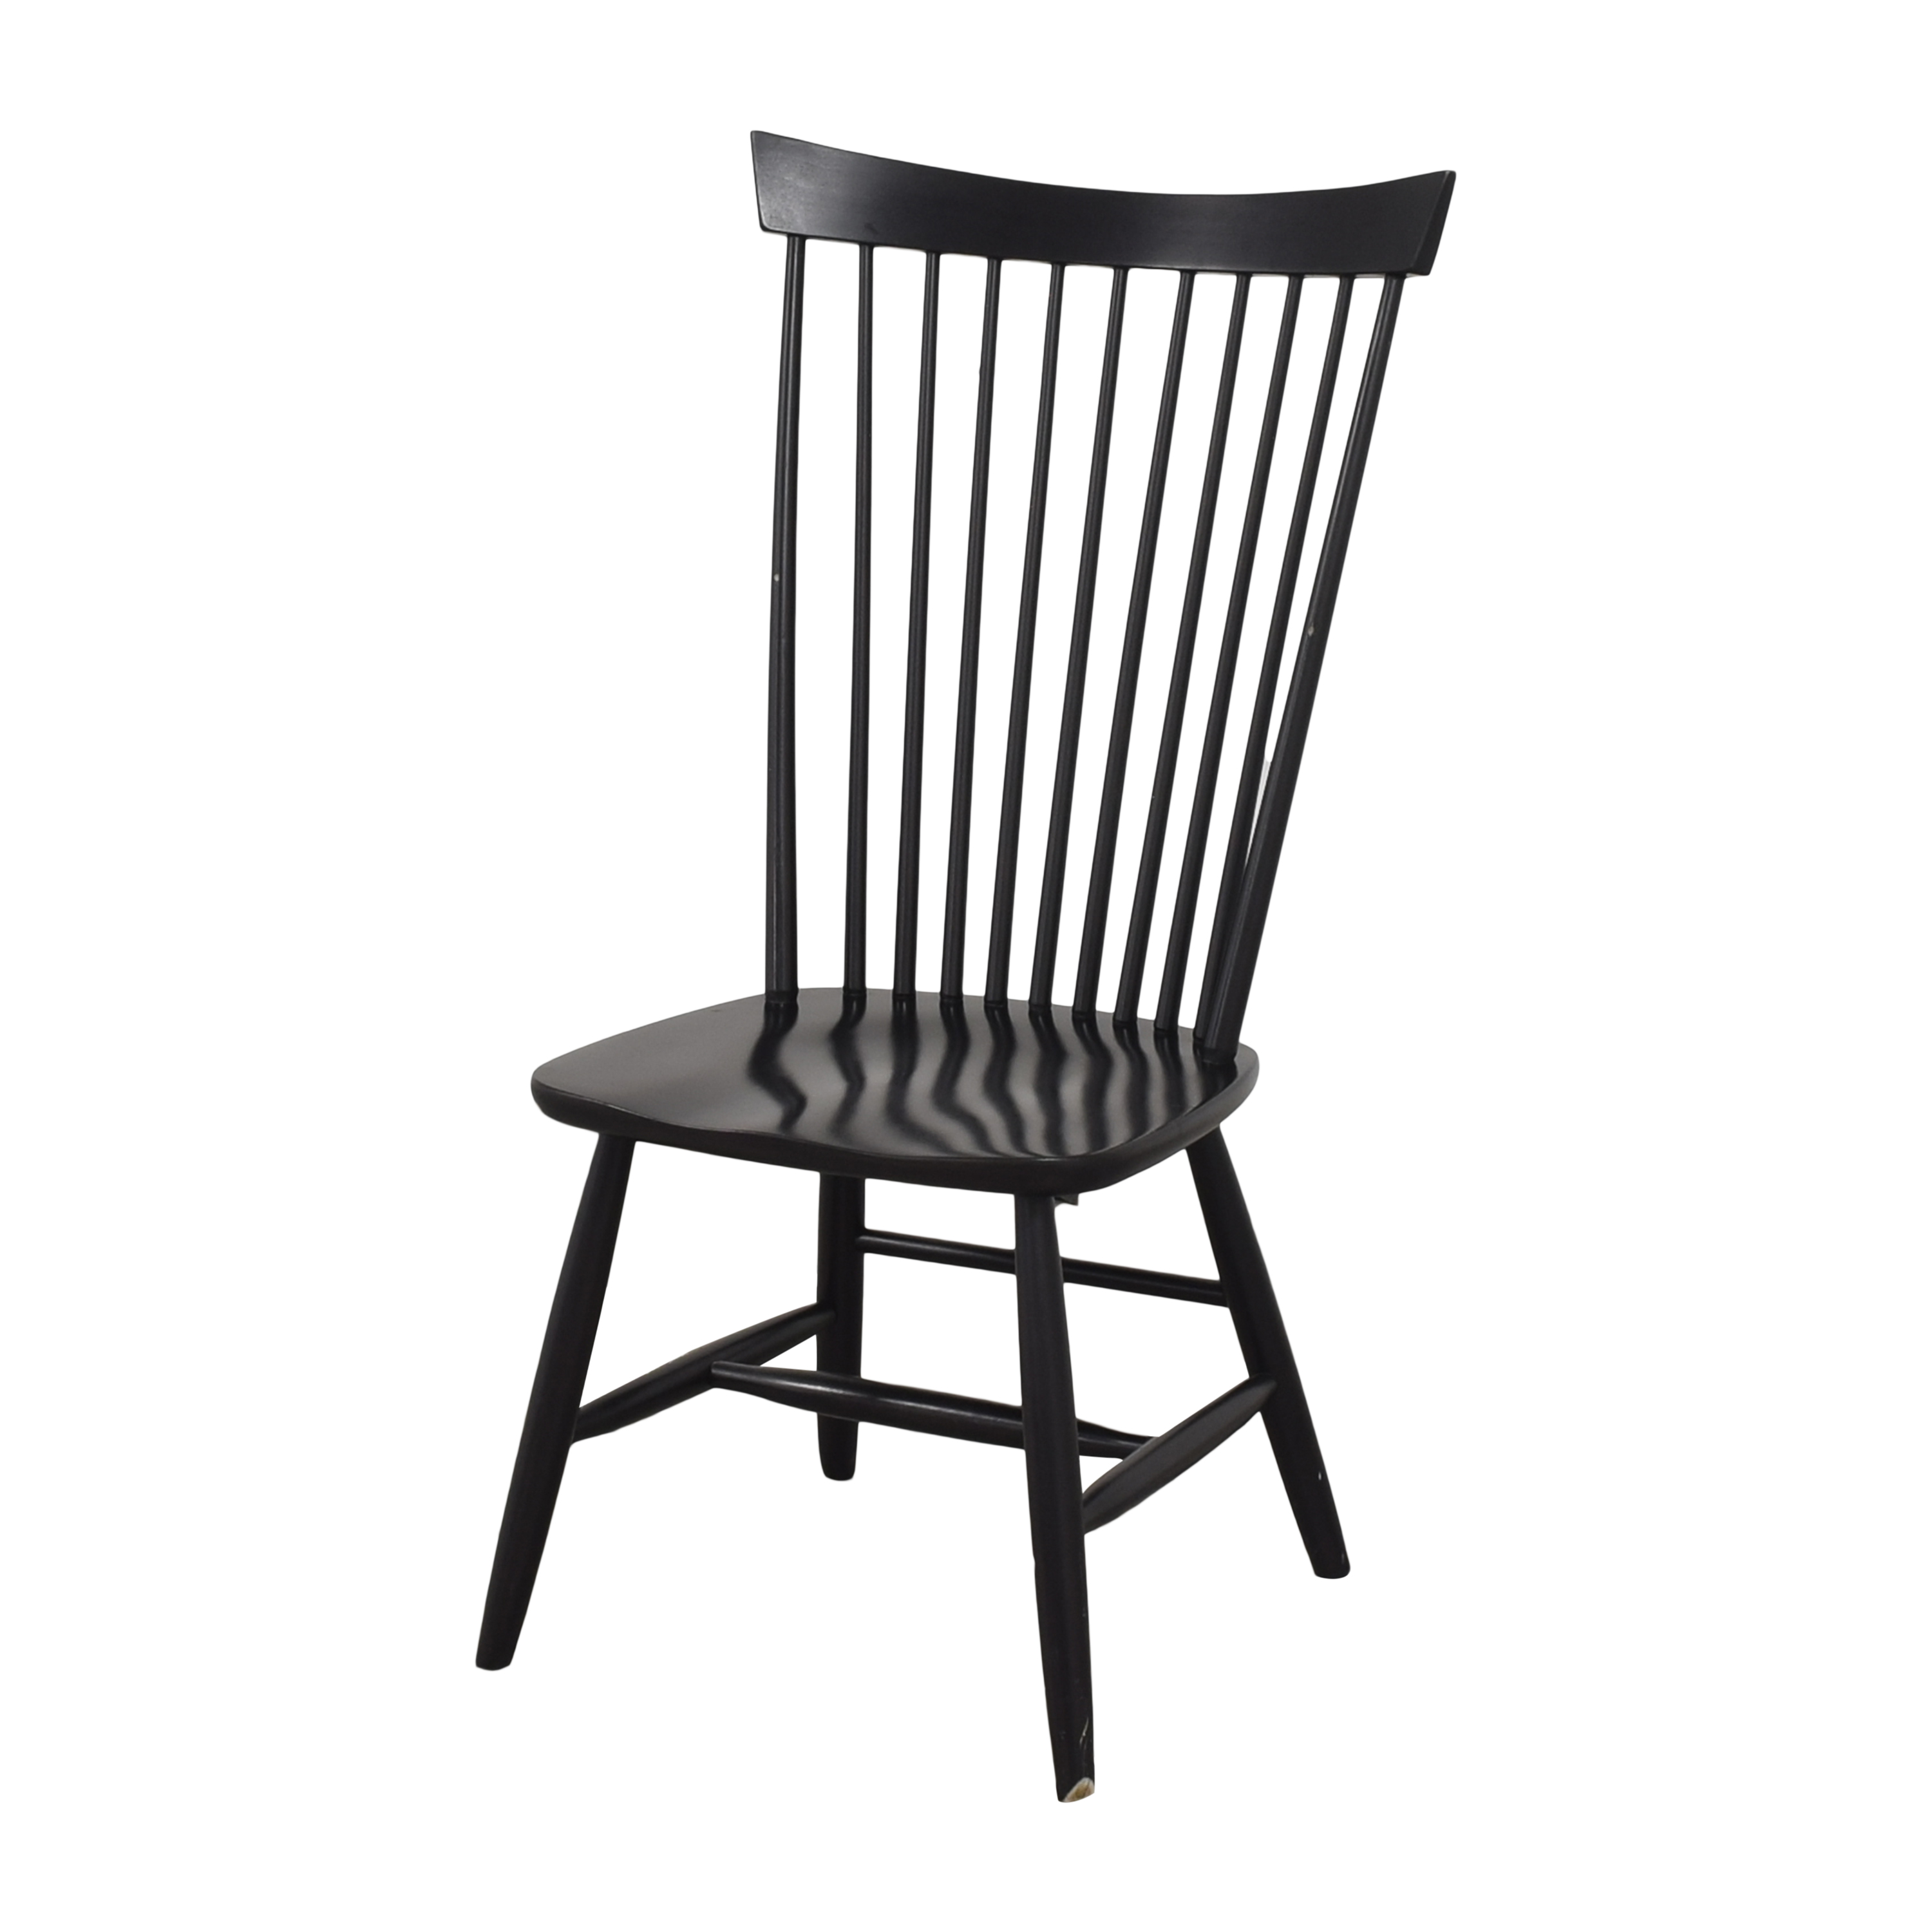 buy Crate & Barrel Marlow II Dining Chairs Crate & Barrel Dining Chairs